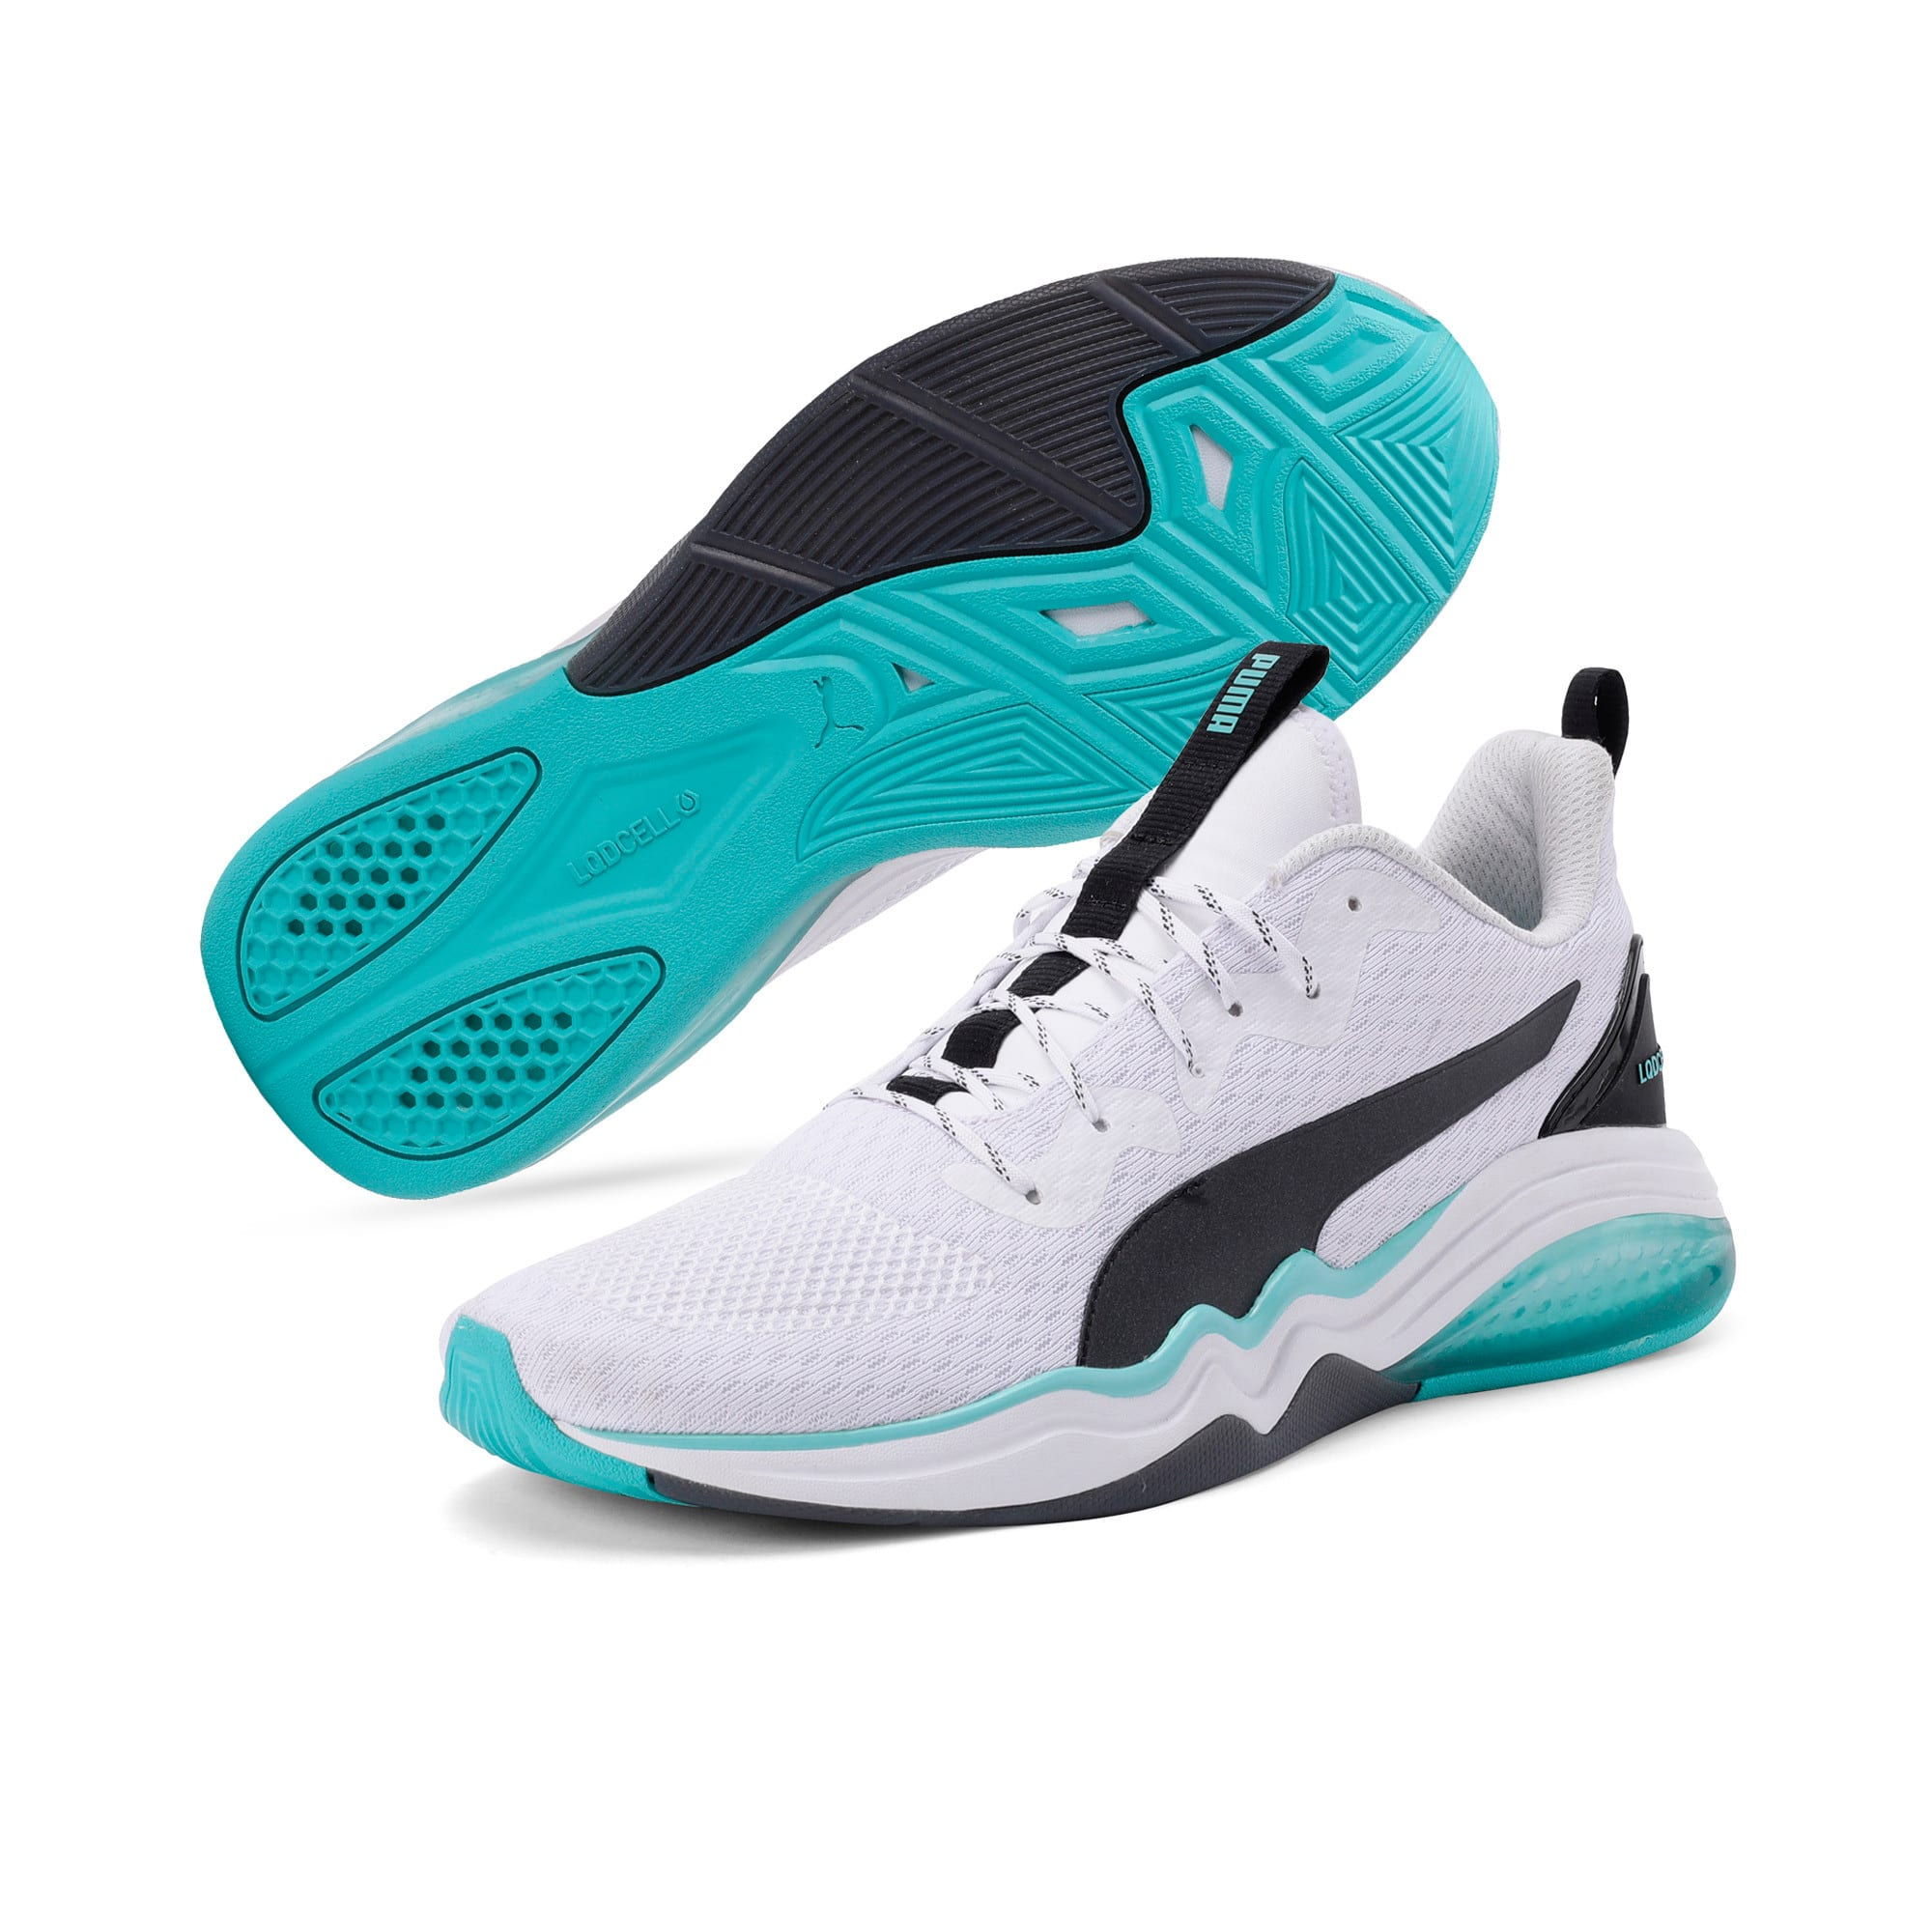 Thumbnail 4 of LQDCELL Tension Men's Training Shoes, Puma White-Blue Turquoise, medium-IND